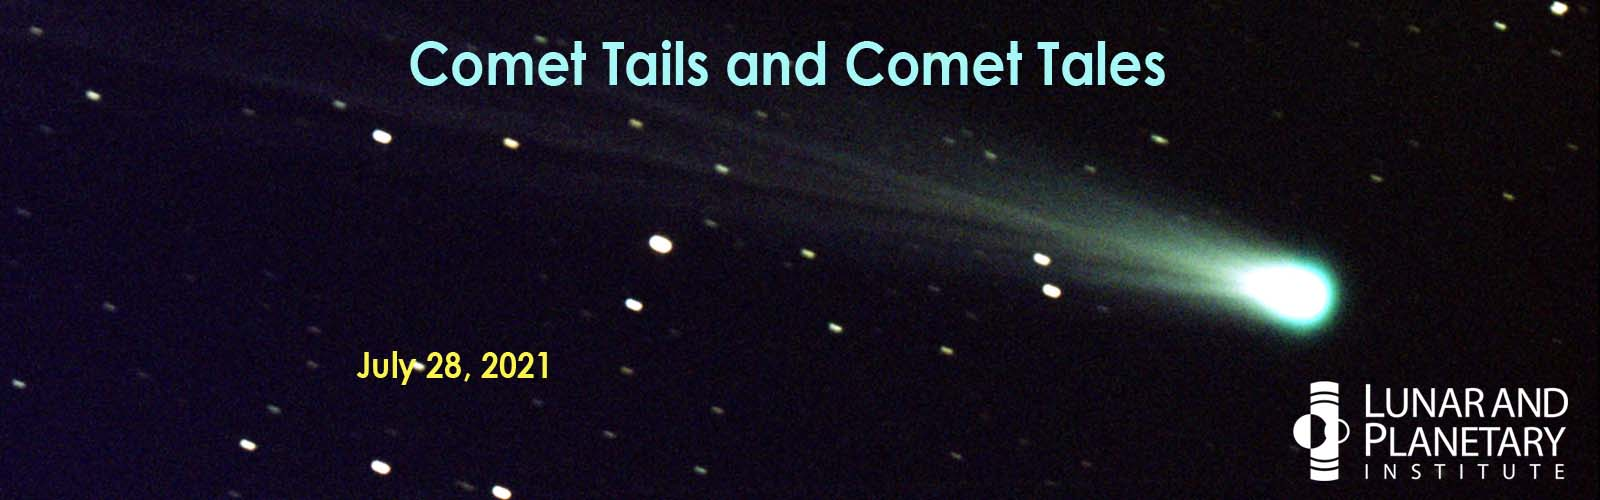 Don't miss our Virtual Kids Program: Comet Tails and Comet Tales presented by the Lunar and Planetary Institute!